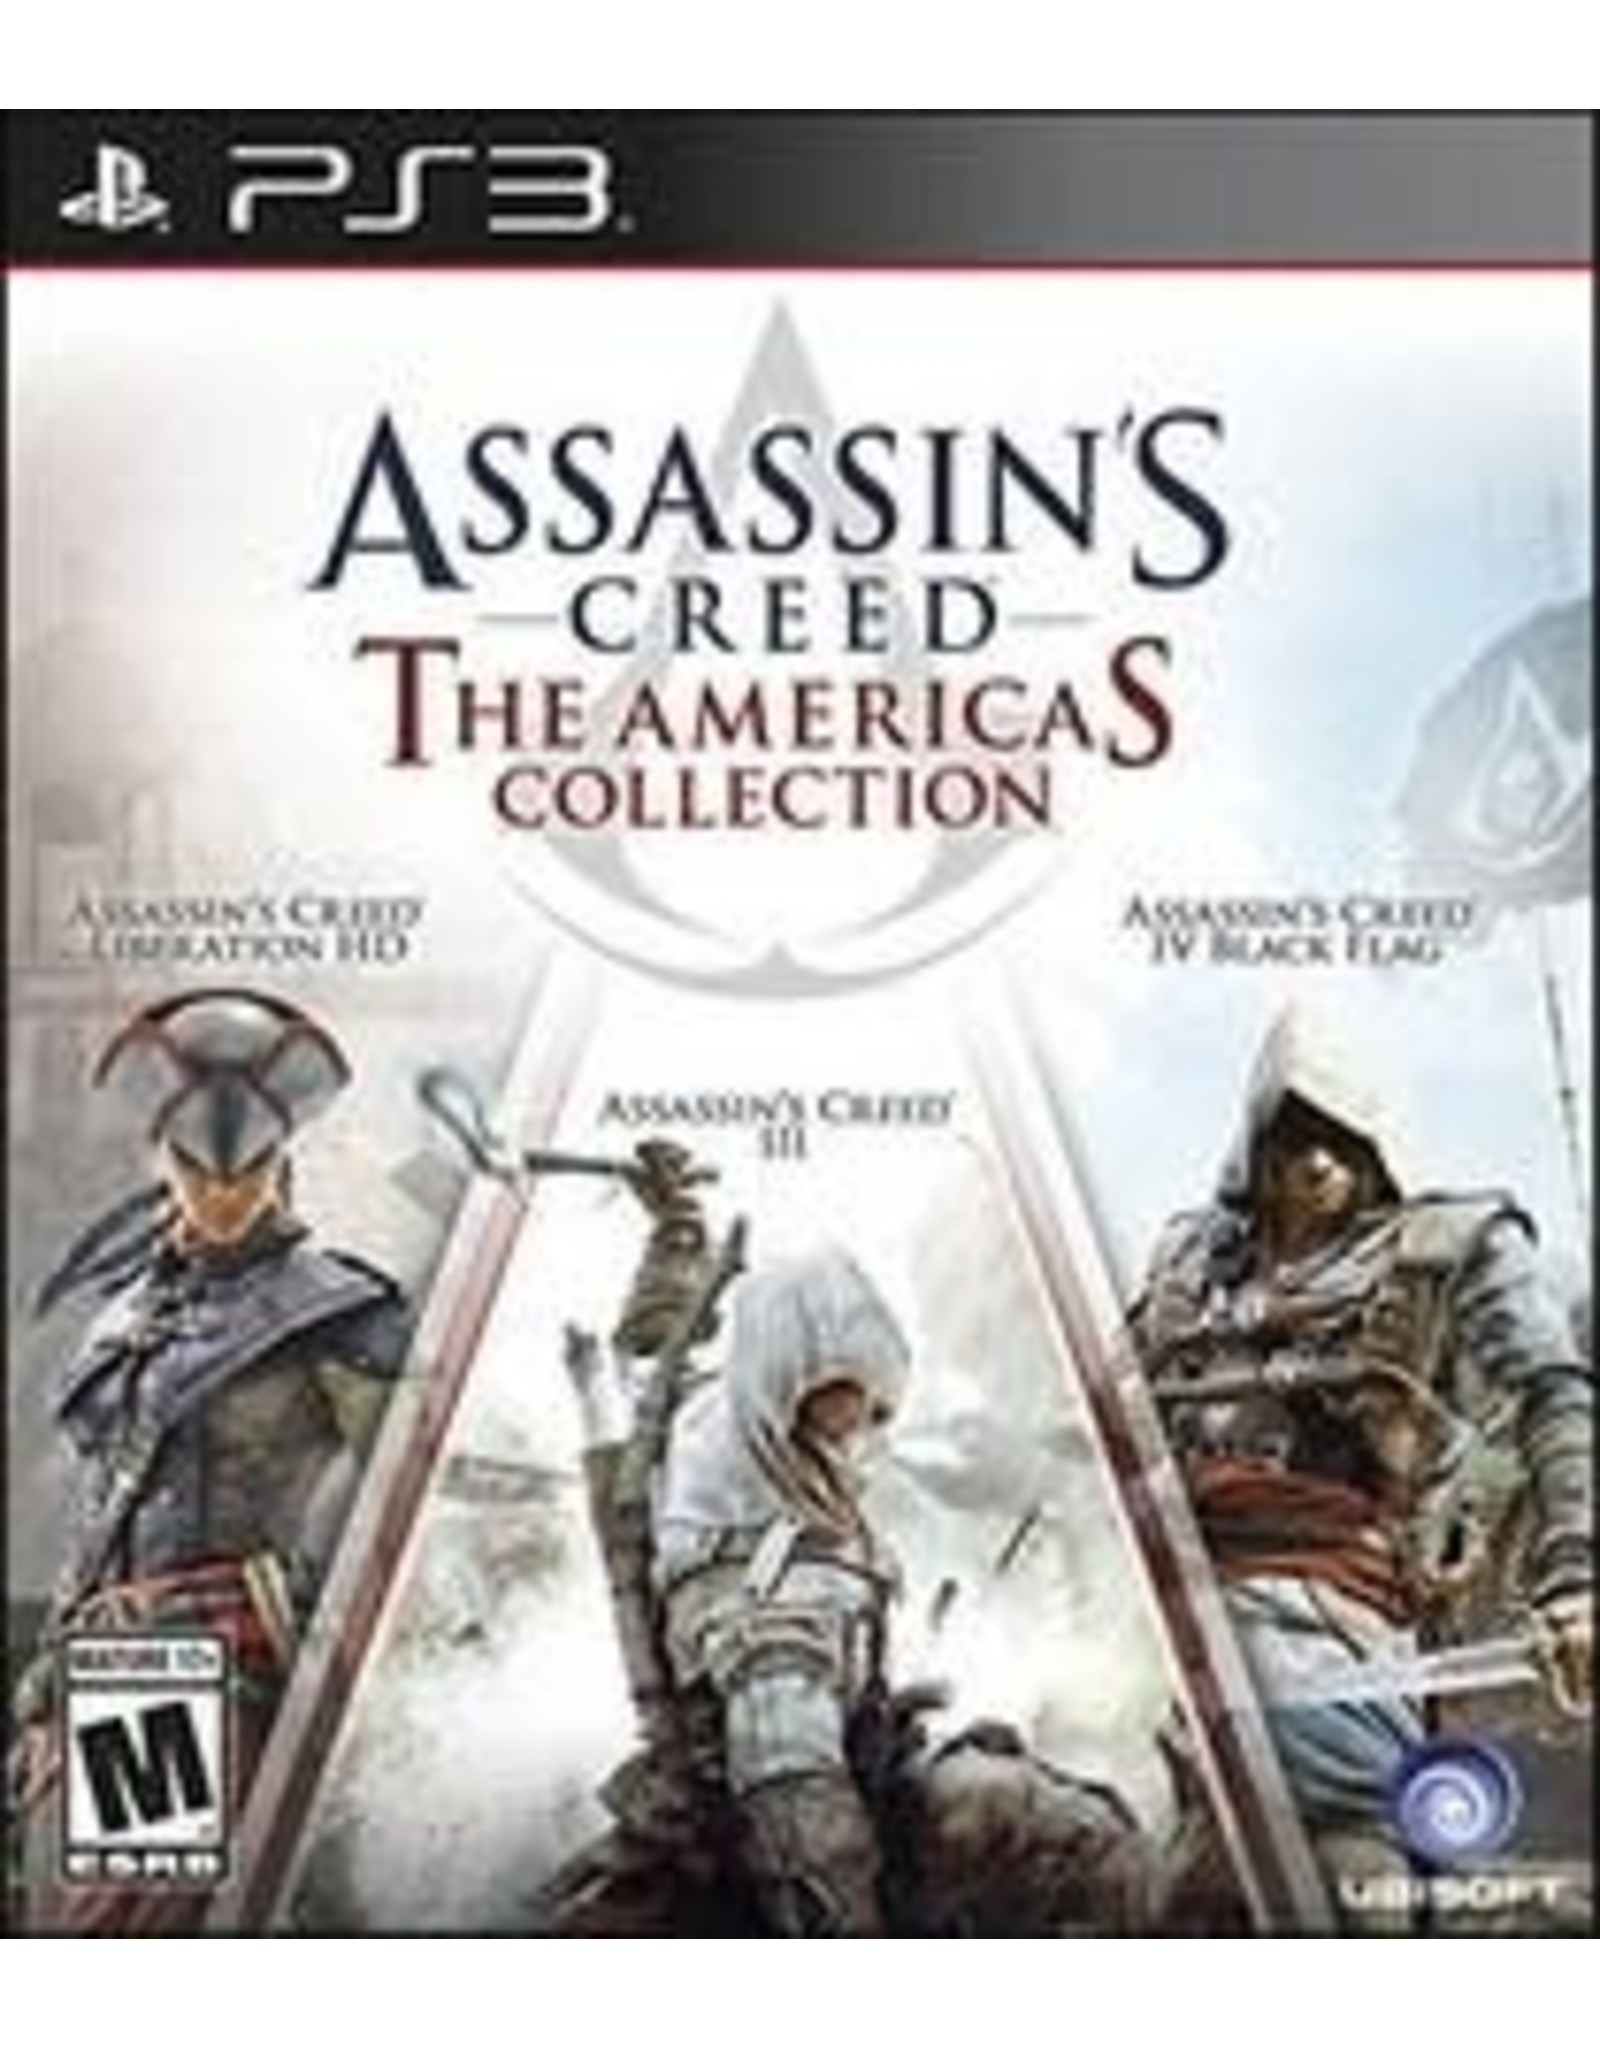 Playstation 3 Assassin's Creed: The Americas Collection (CIB)